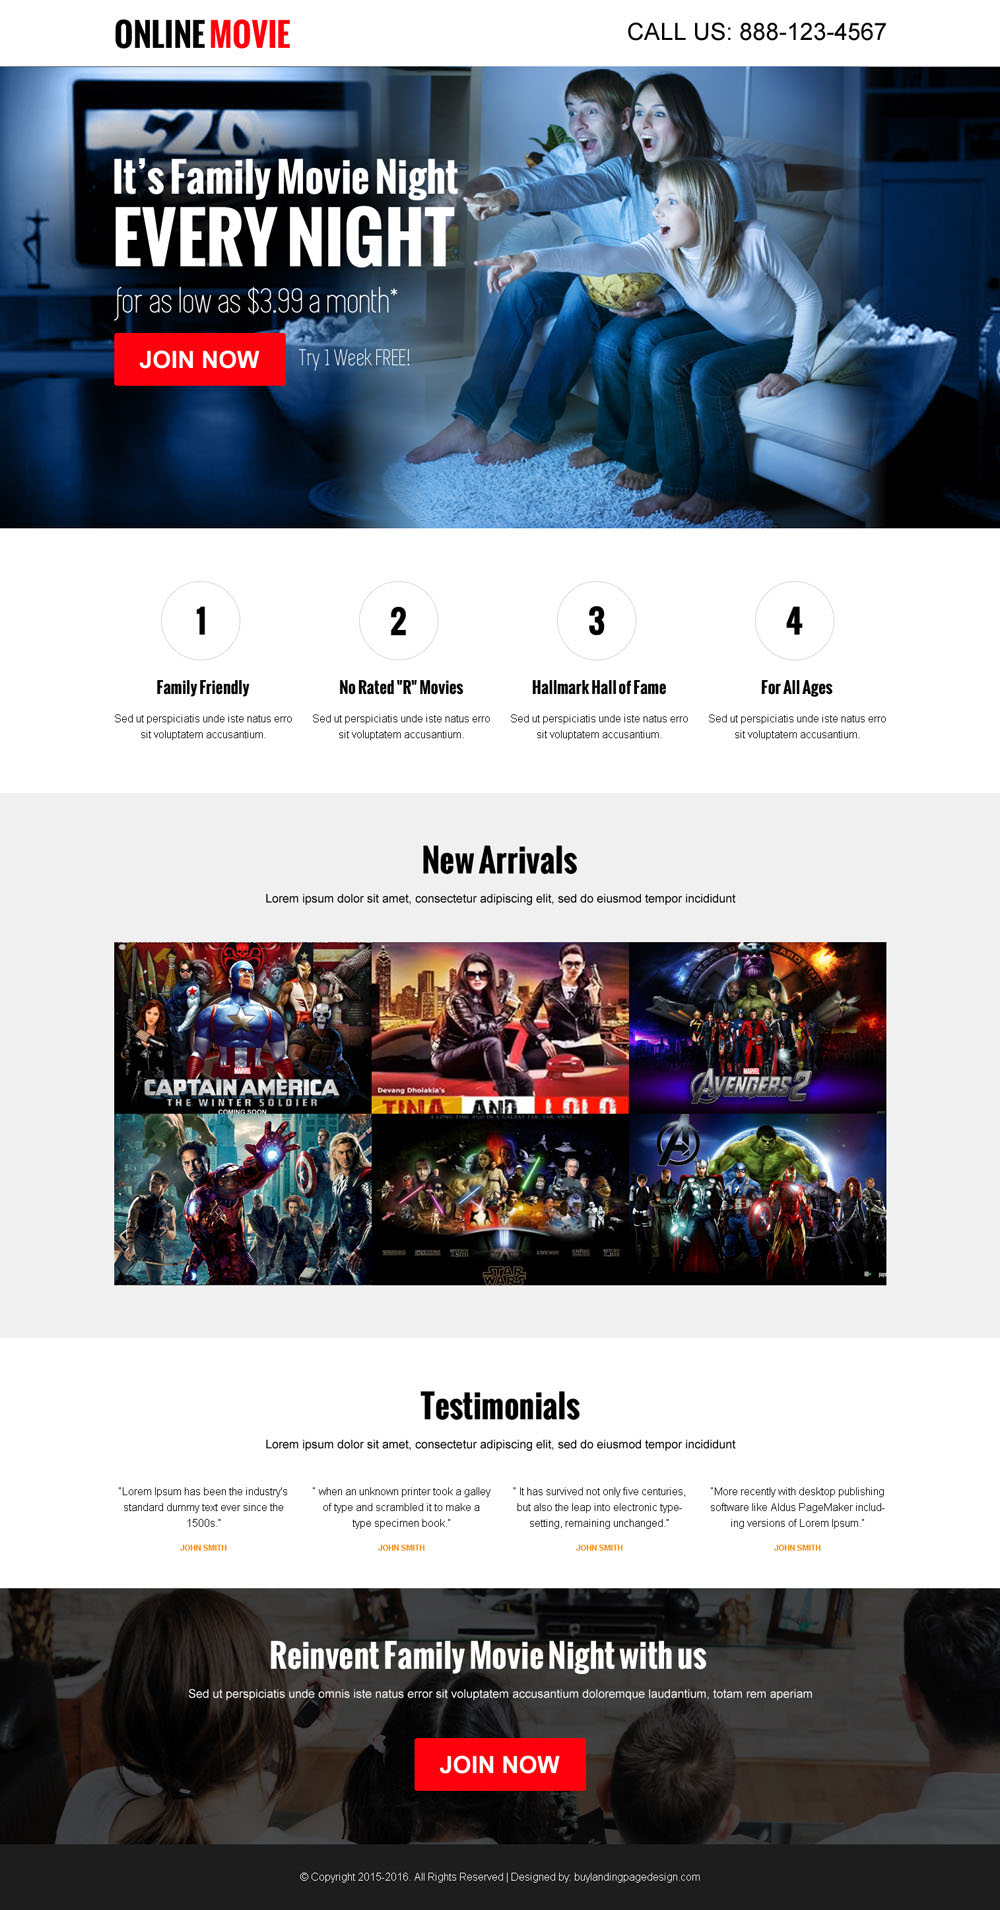 watch-movies-online-cta-landing-page-design-template-004